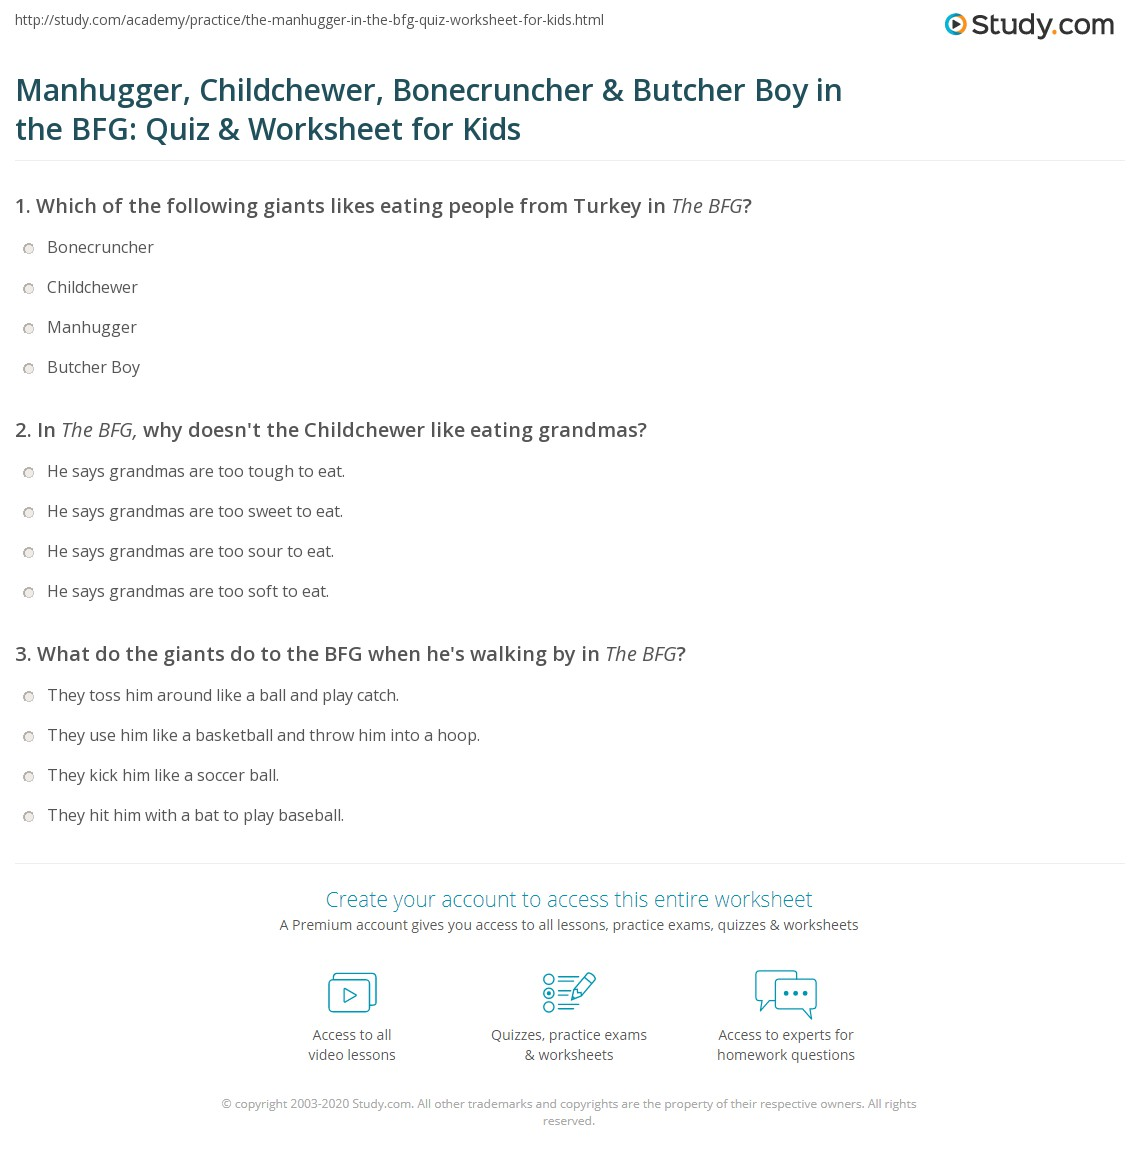 Manhugger Childchewer Bonecruncher Amp Butcher Boy In The